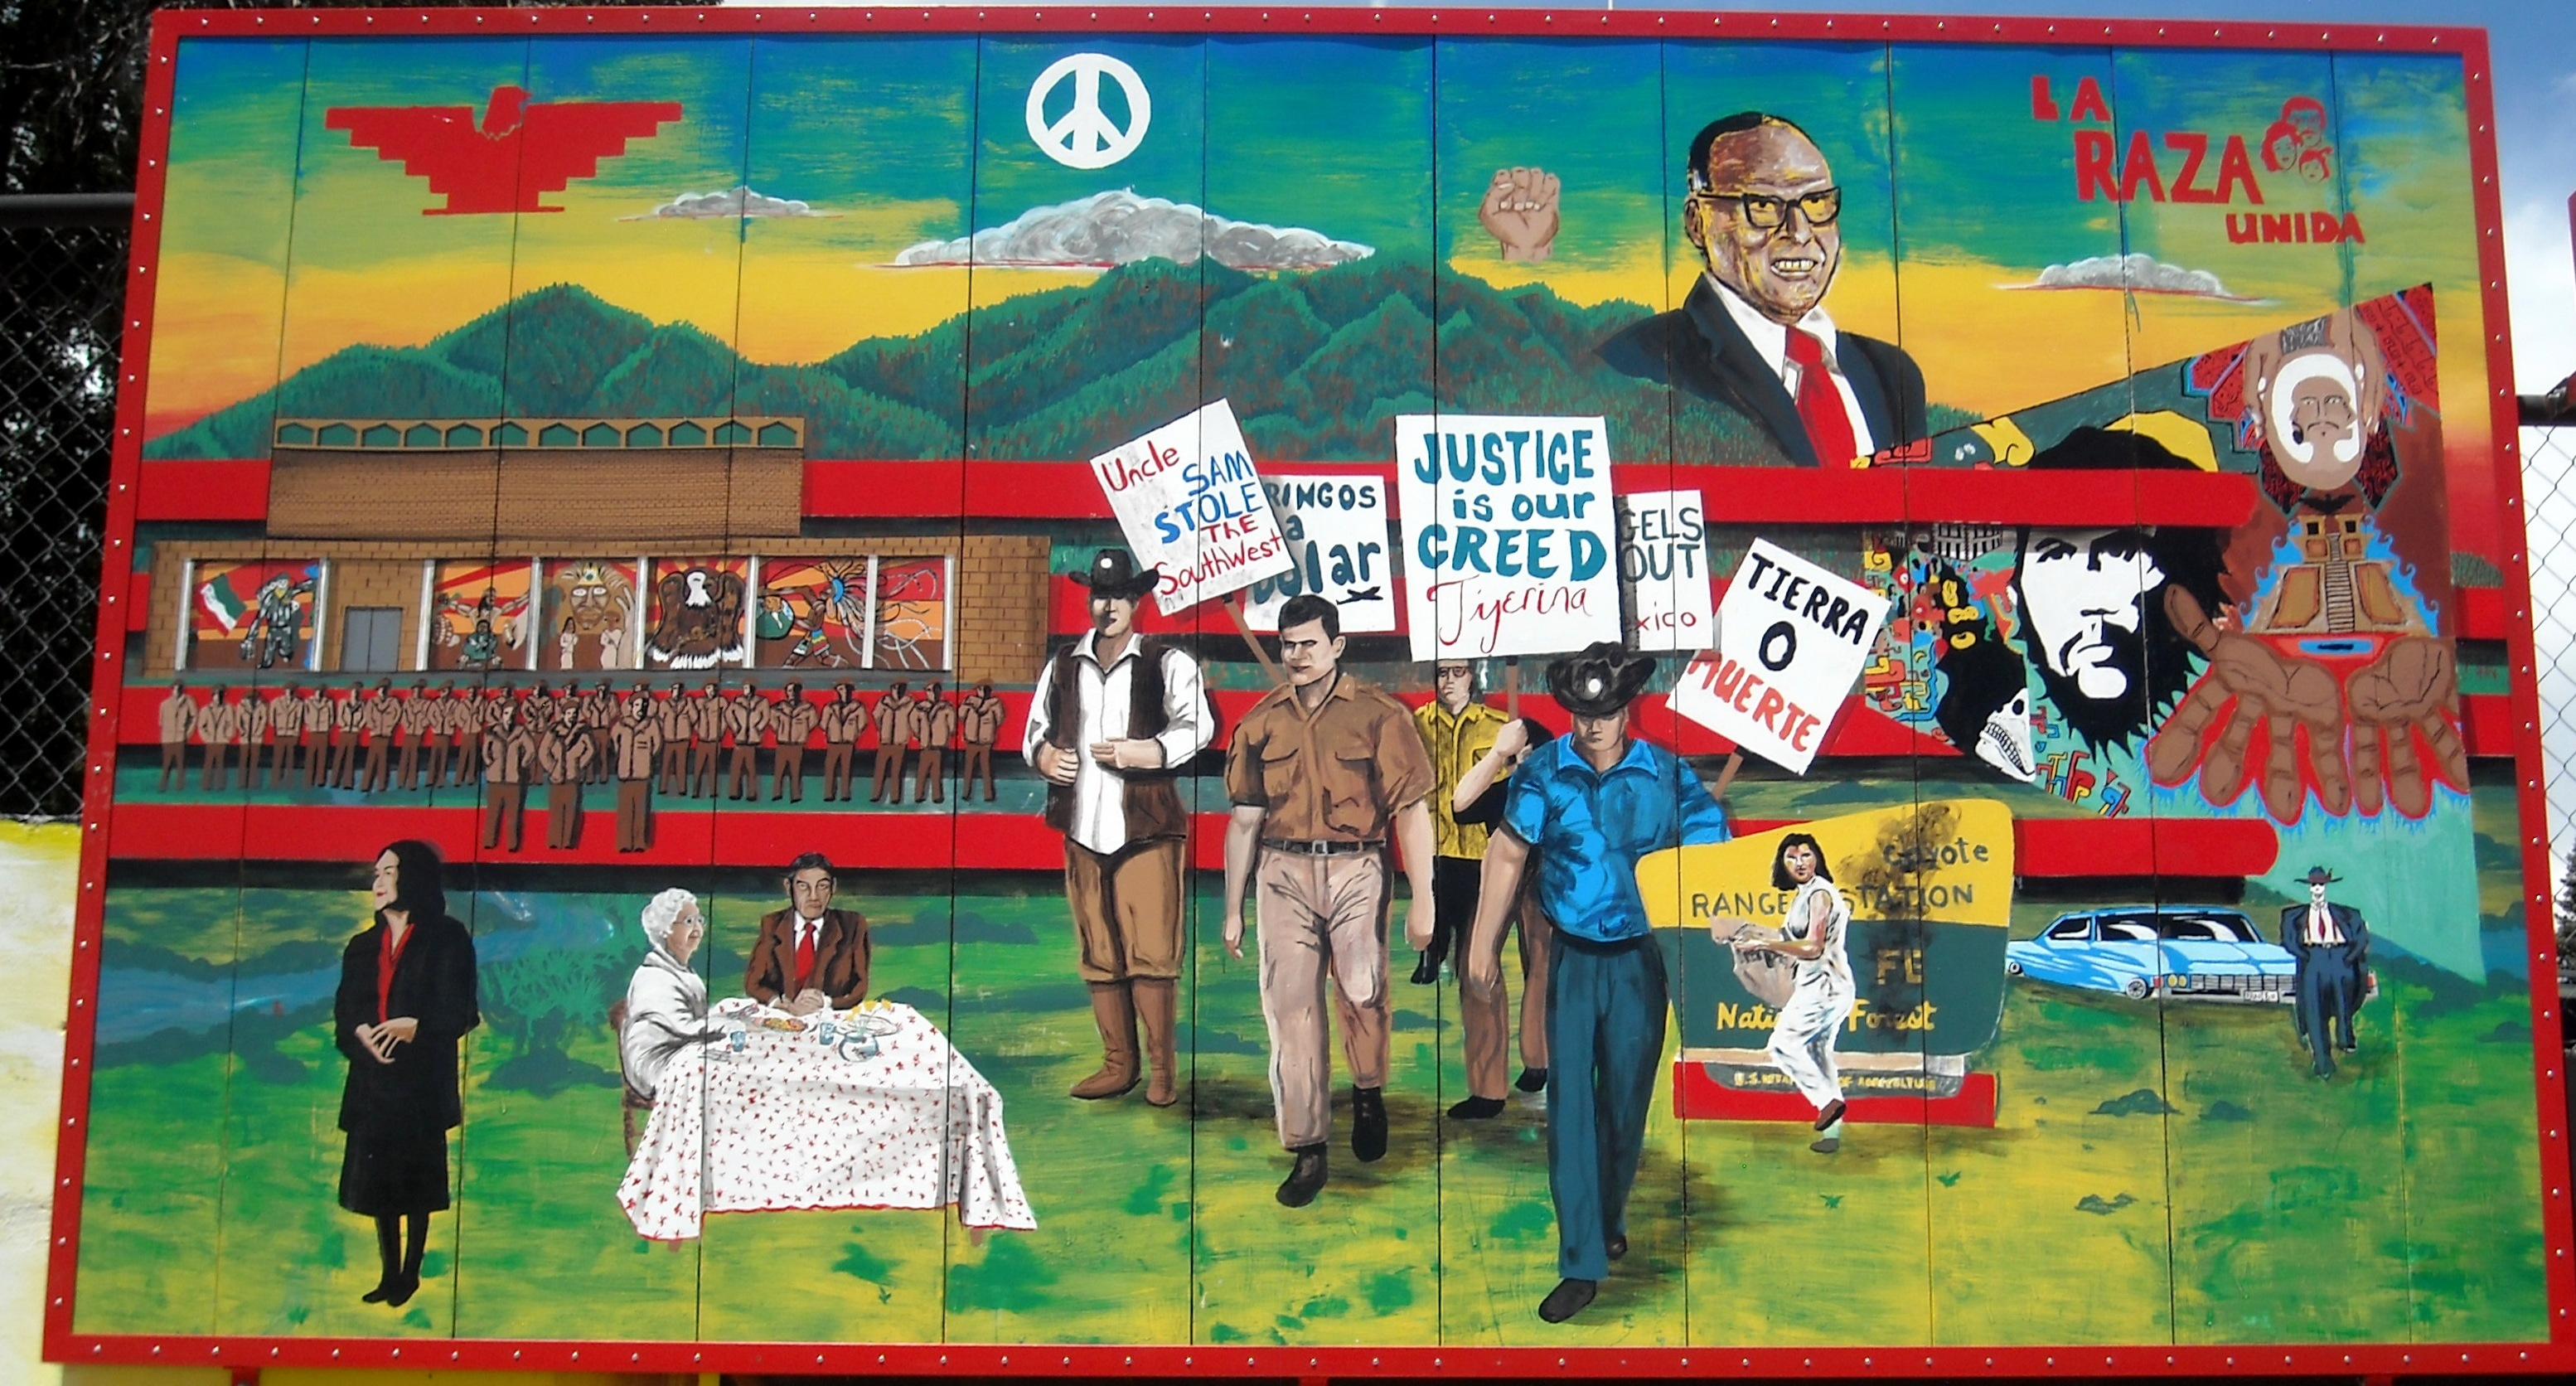 The People's History of El Norte mural in Las Vegas, New Mexico